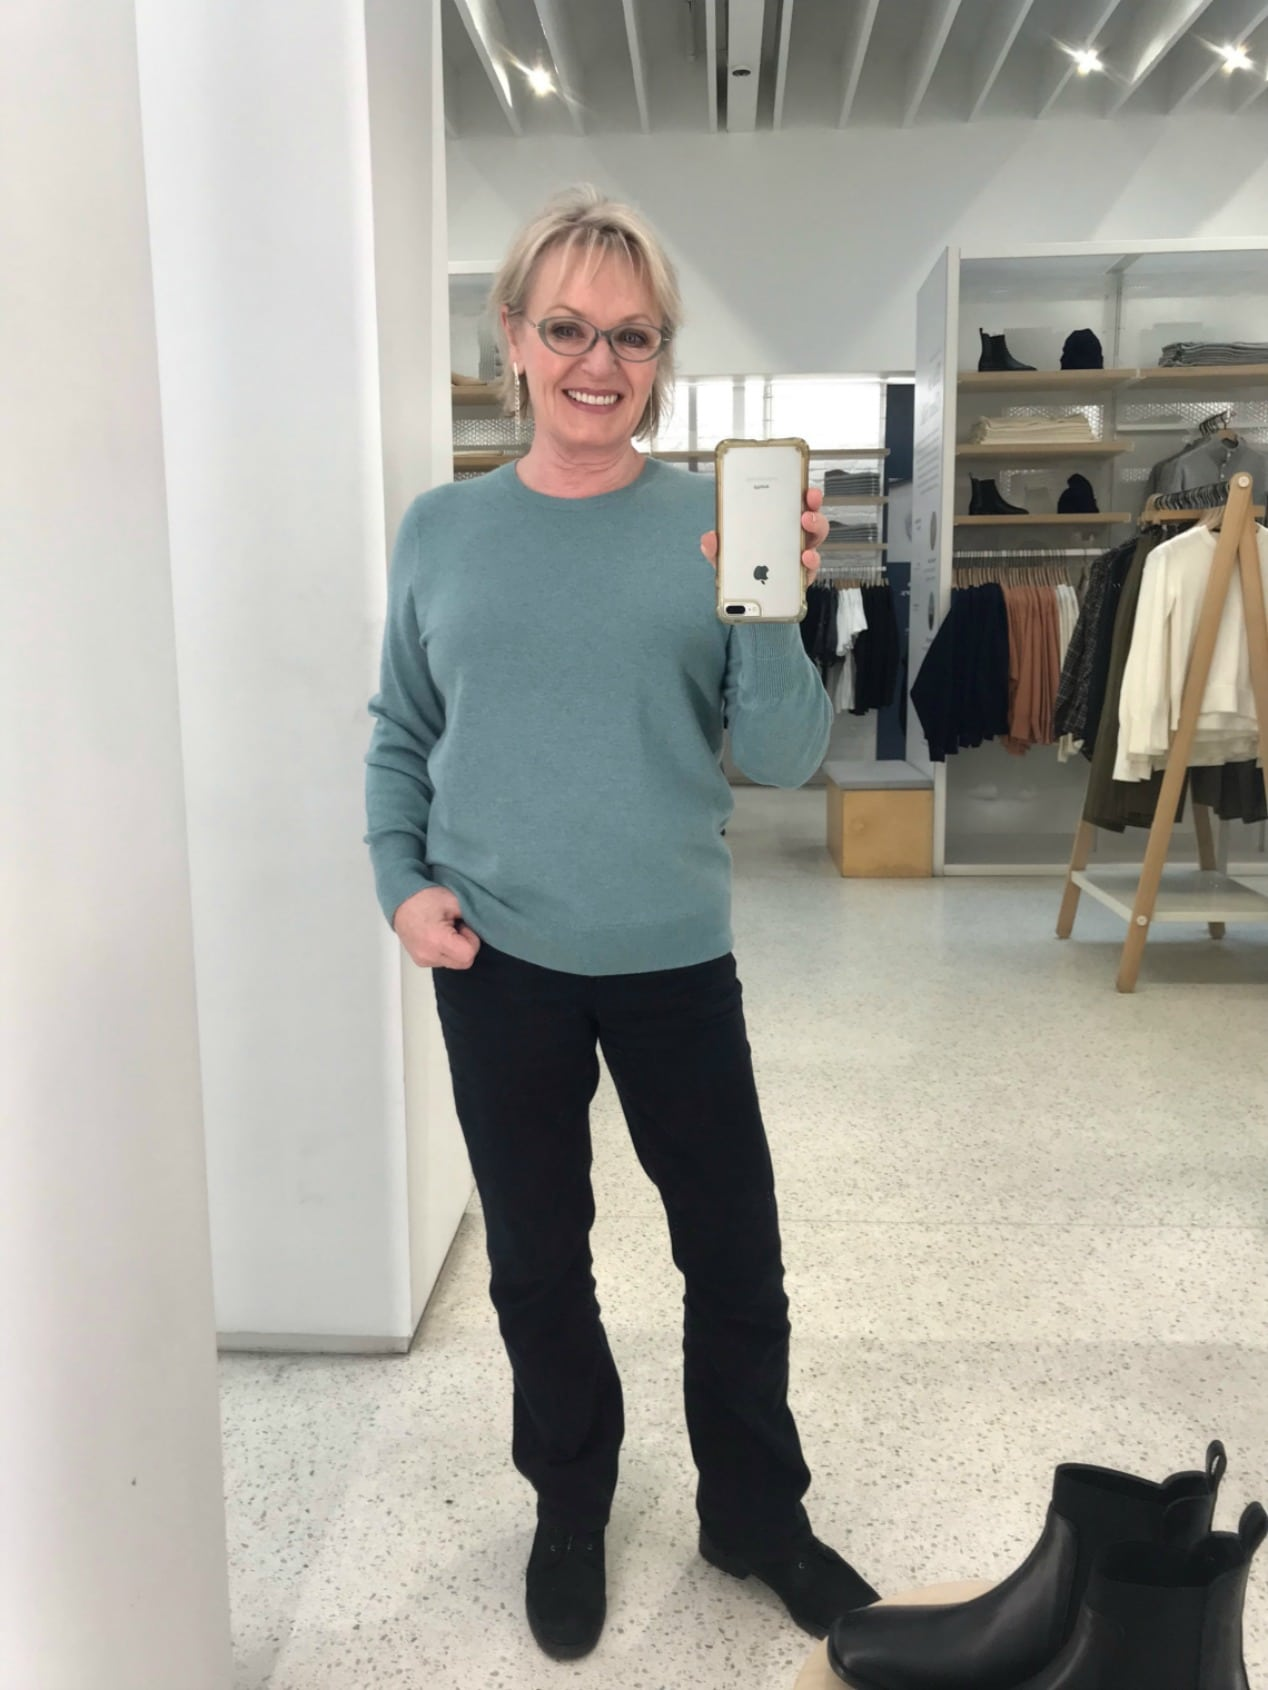 Dressing Room Diaries: Soft and Fuzzy